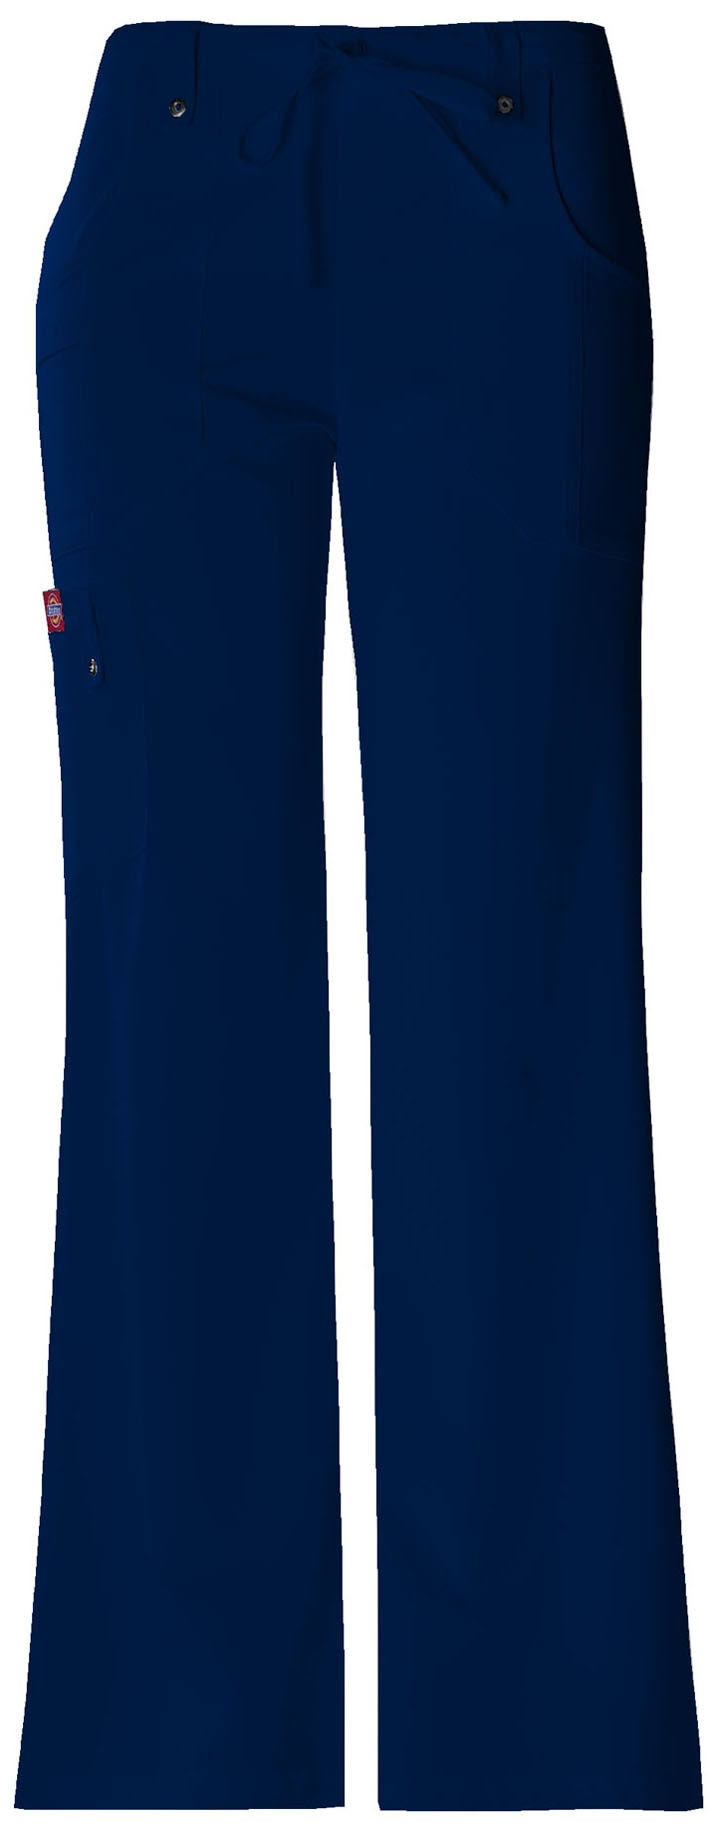 Dickies Women's Xtreme Stretch Tall Drawstring Scrub Pant - XL - Navy